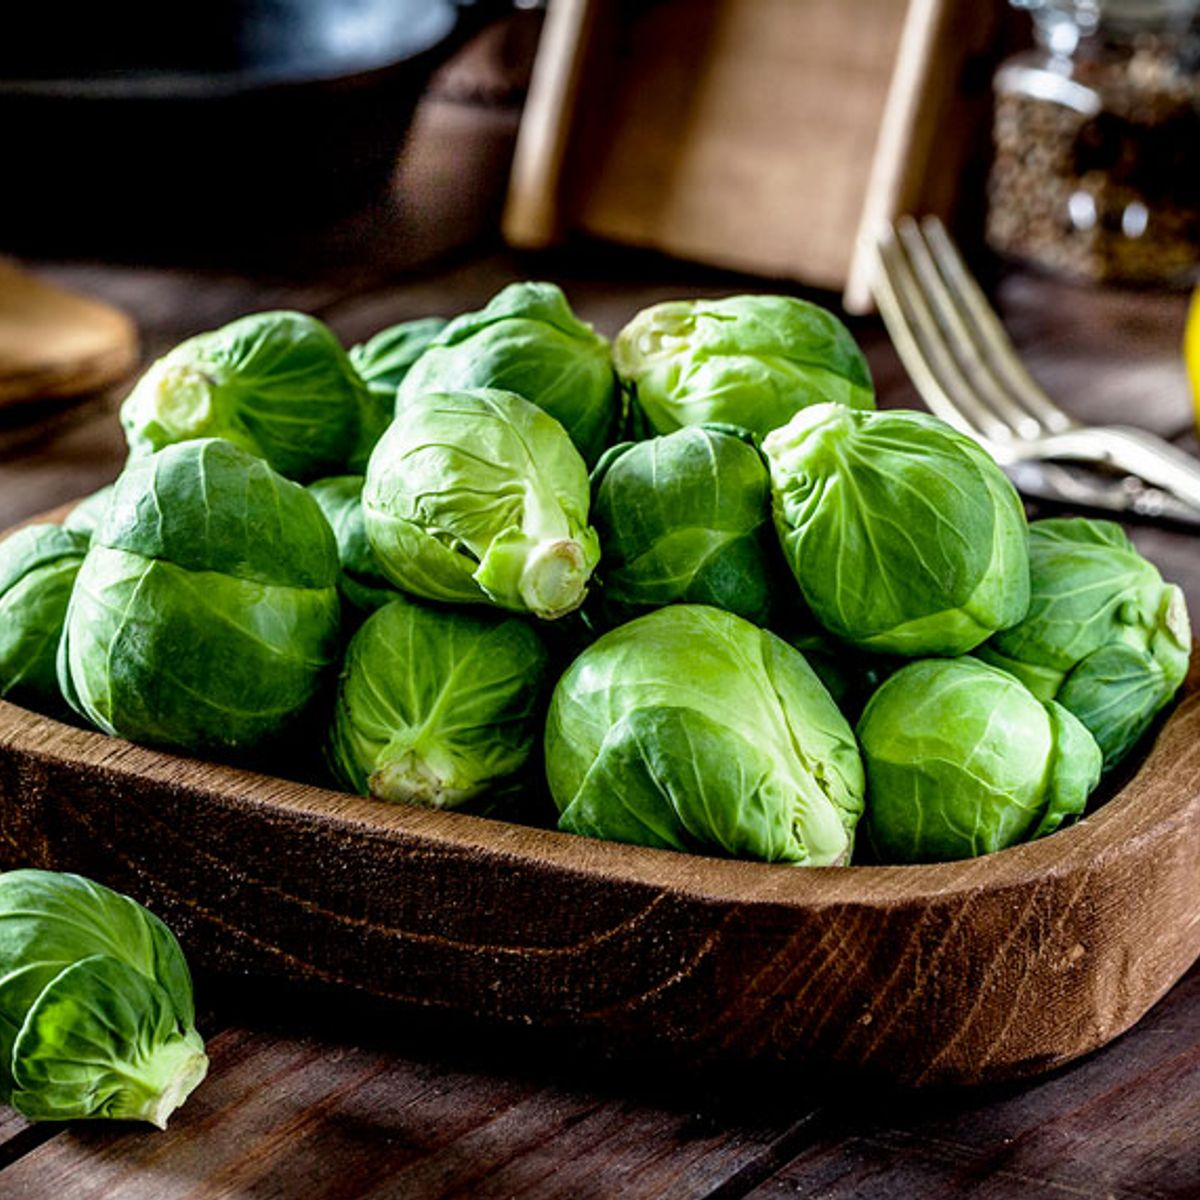 Two chefs shared their secrets to the perfect brussels